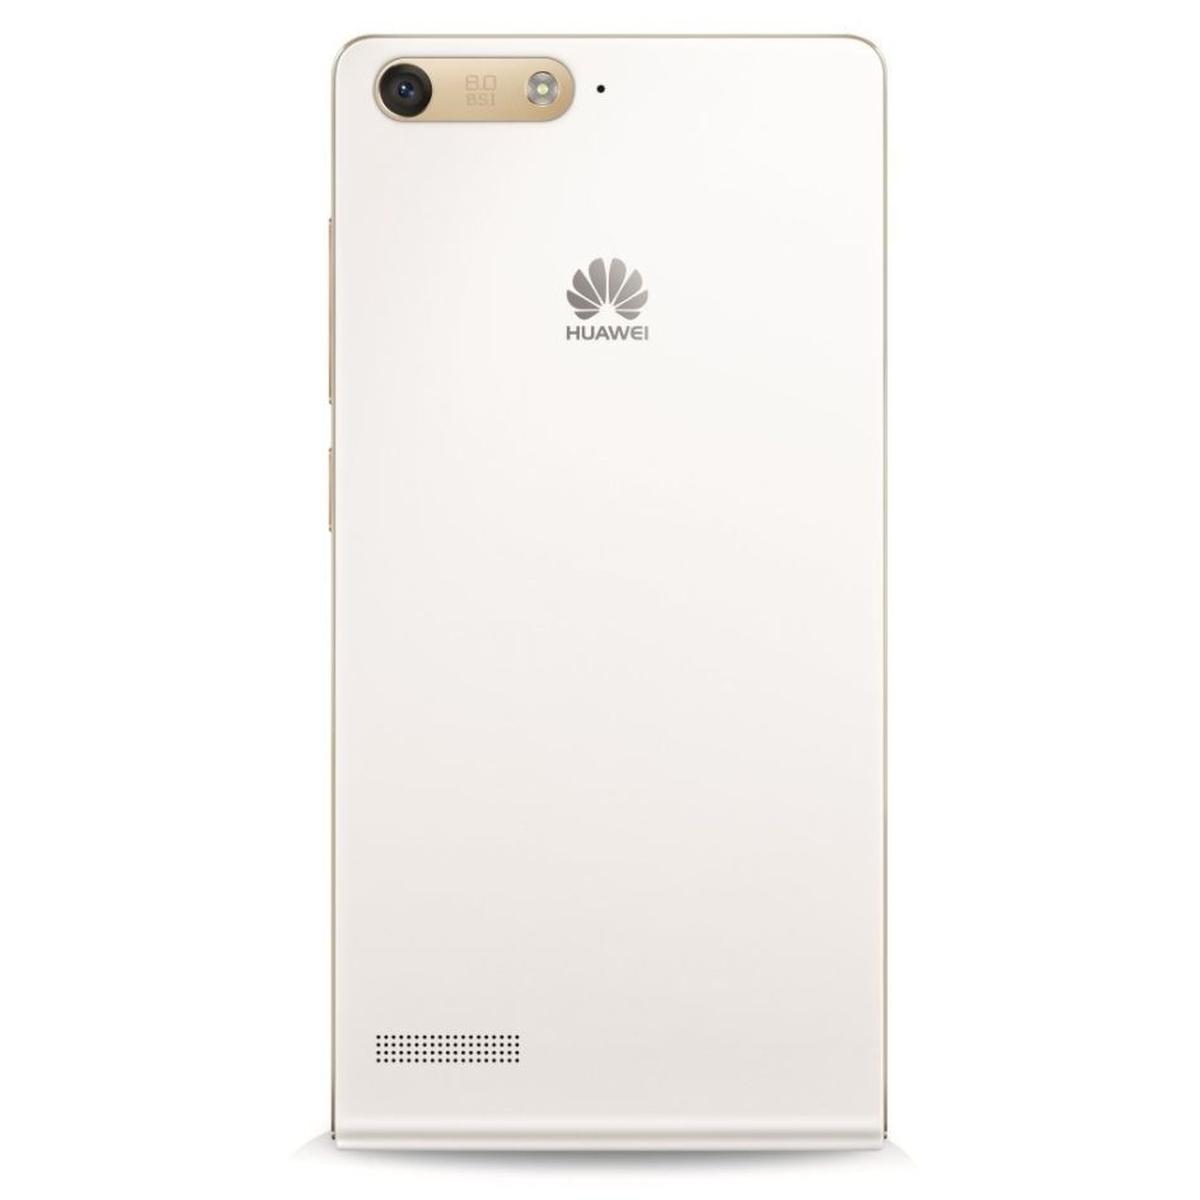 Huawei P7 mini 8GB LTE Android Smartphone DEMO